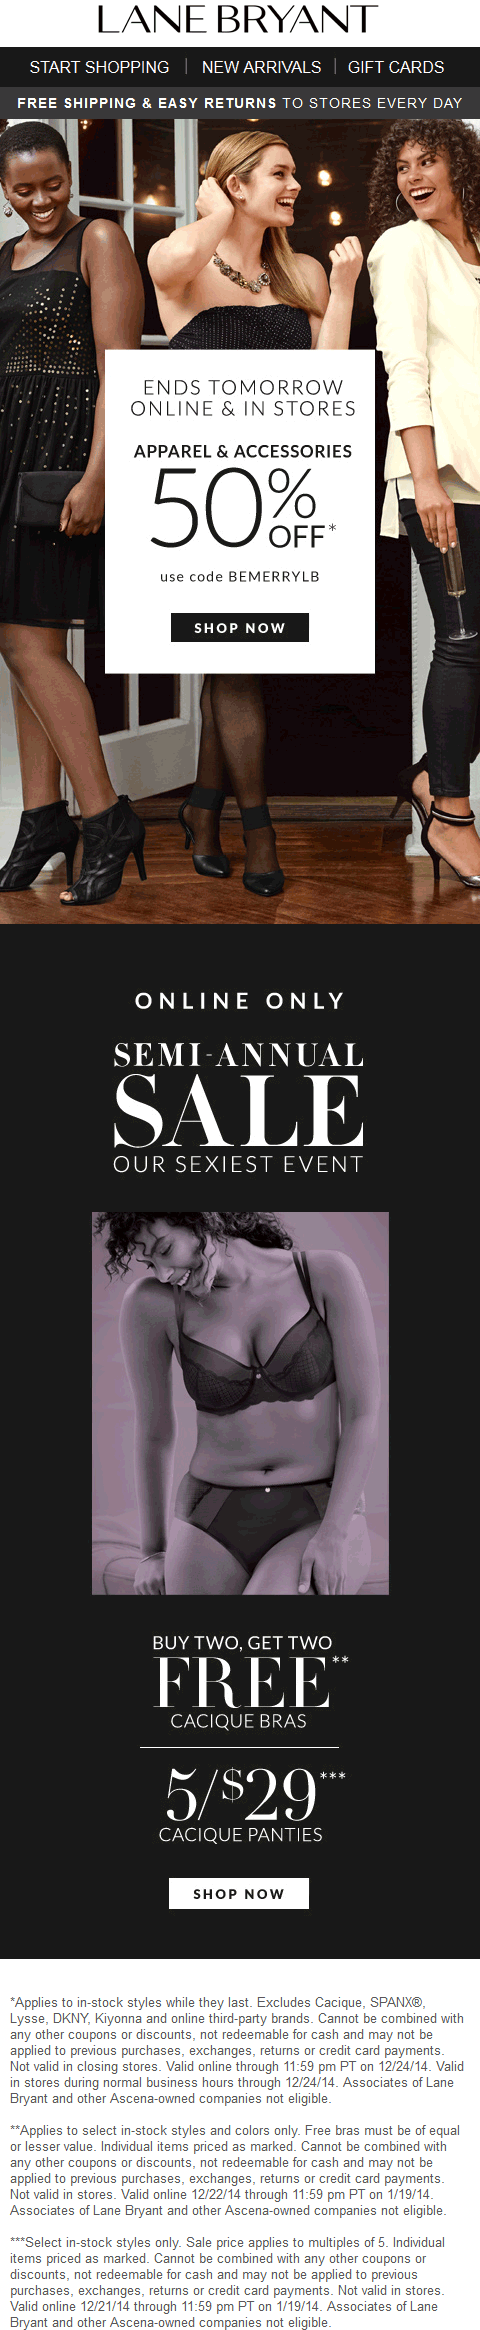 Lane Bryant Coupon April 2019 50% off at Lane Bryant, or online via promo code BEMERRYLB